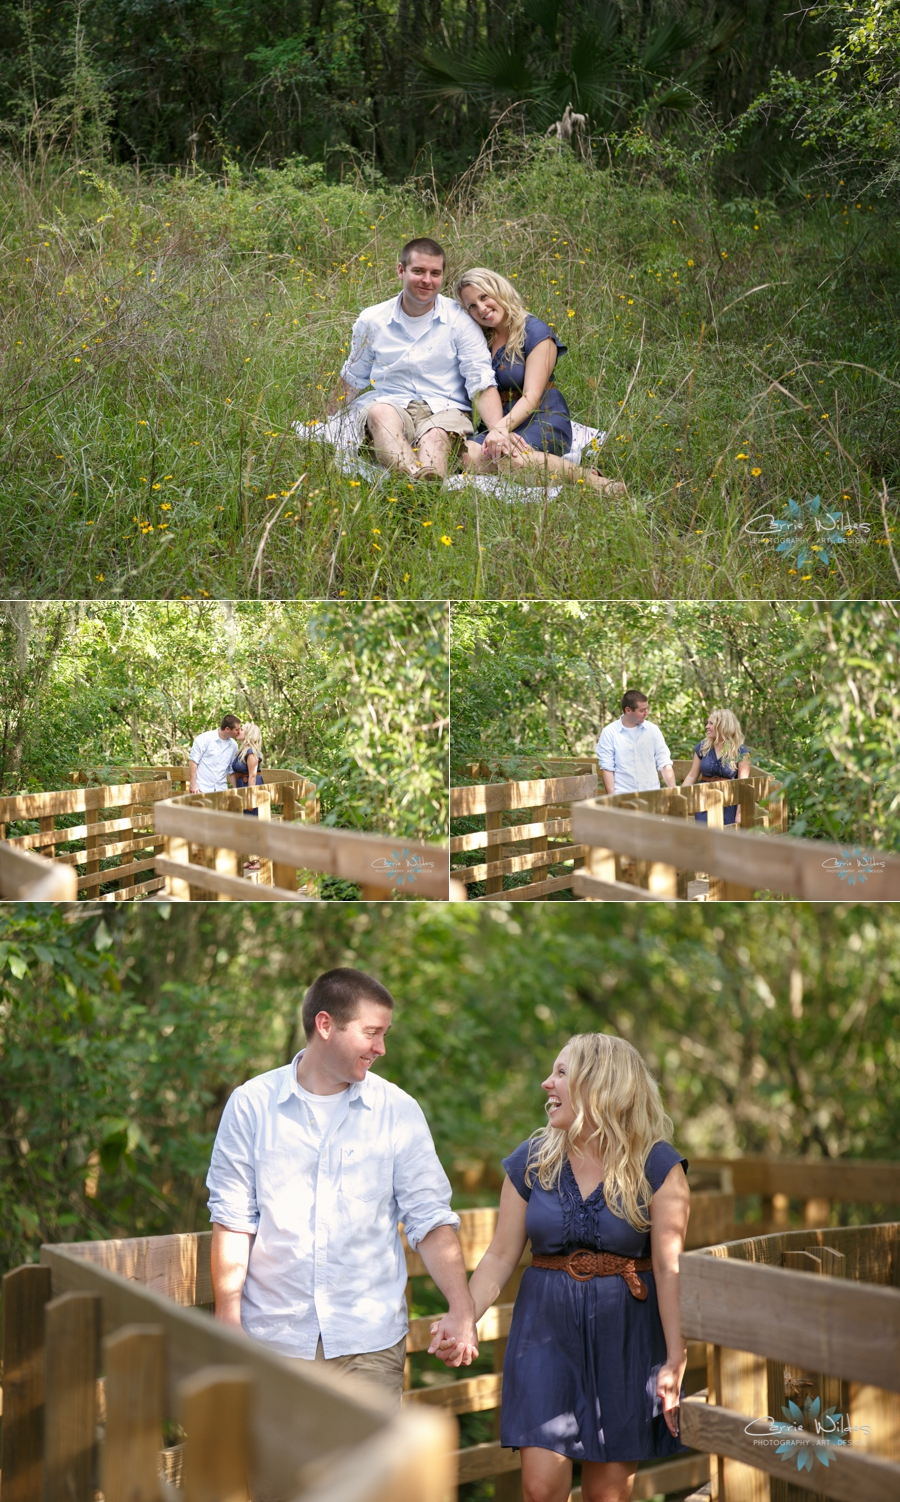 7_8_13 Lettuce Lake Park Engagement Session_0001.jpg